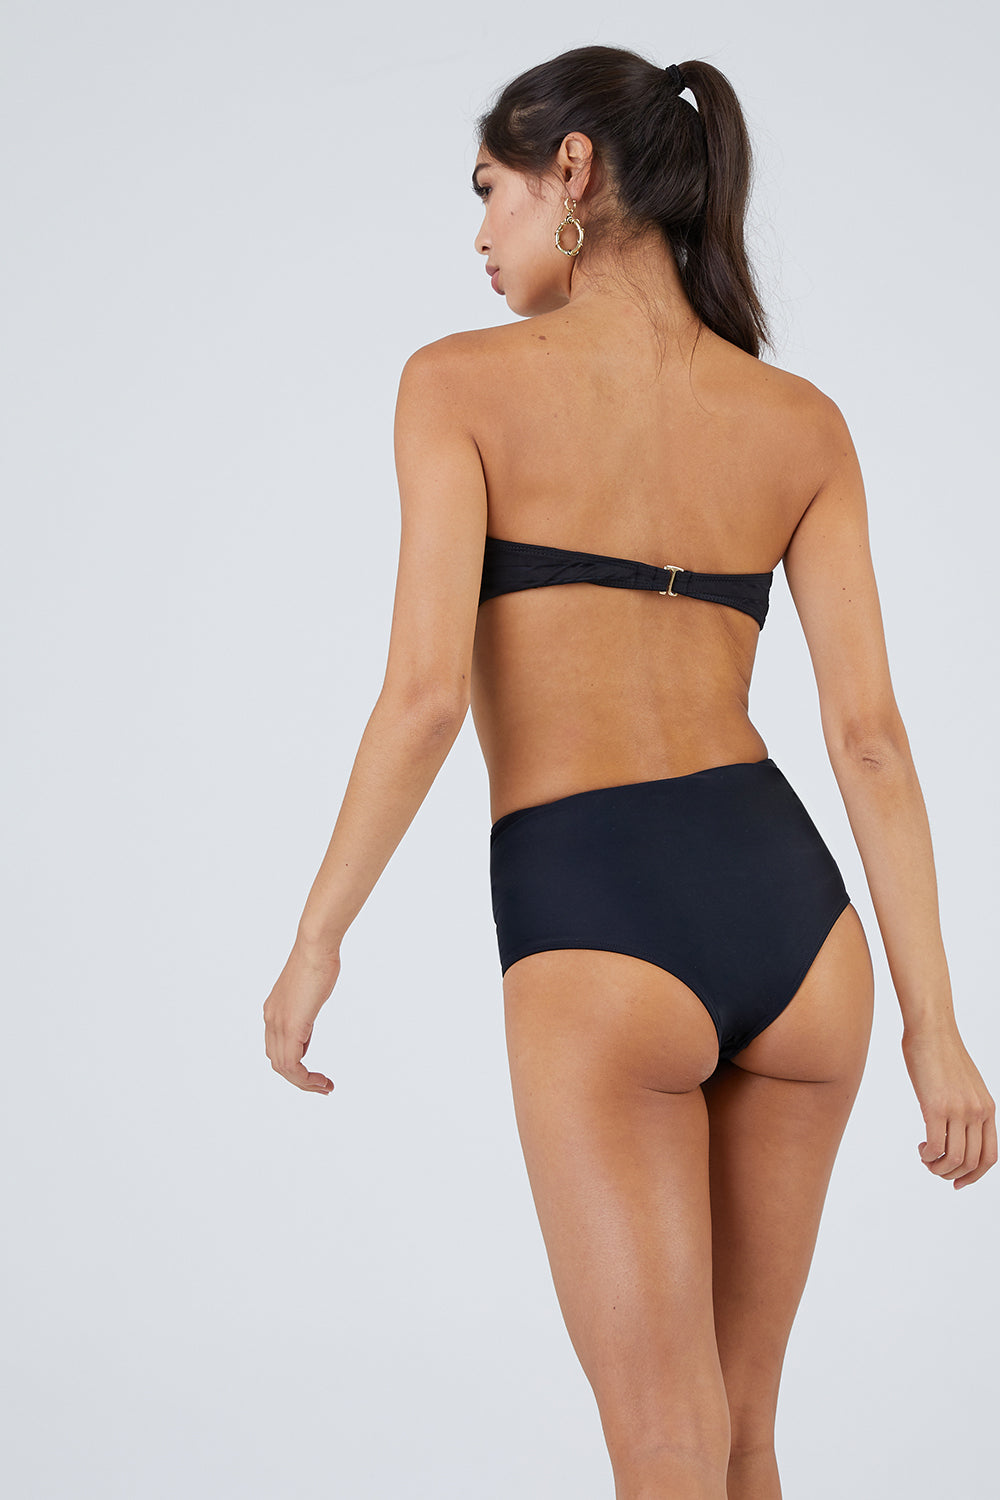 2176bb0ebe BEACH RIOT Harbor Criss Cross Cut Outs Bikini Bottom - Sassy Black -  undefined undefined ...